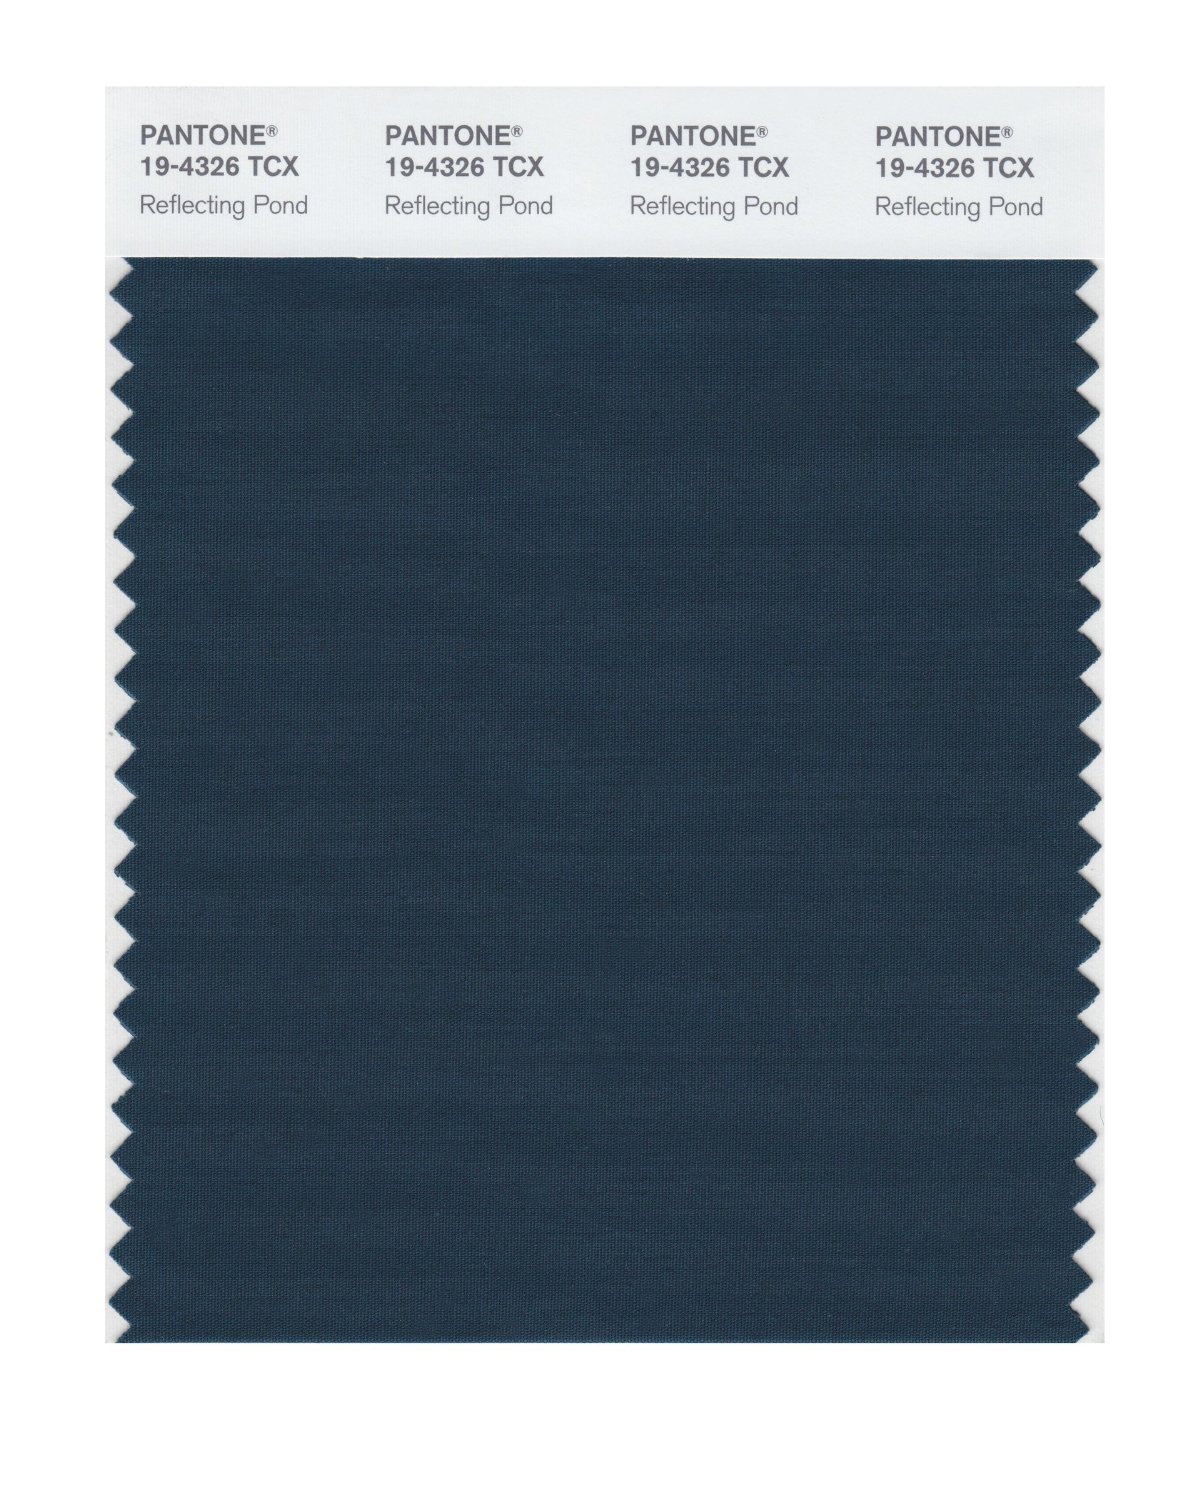 Pantone Smart Swatch 19-4326 Reflecting Pond